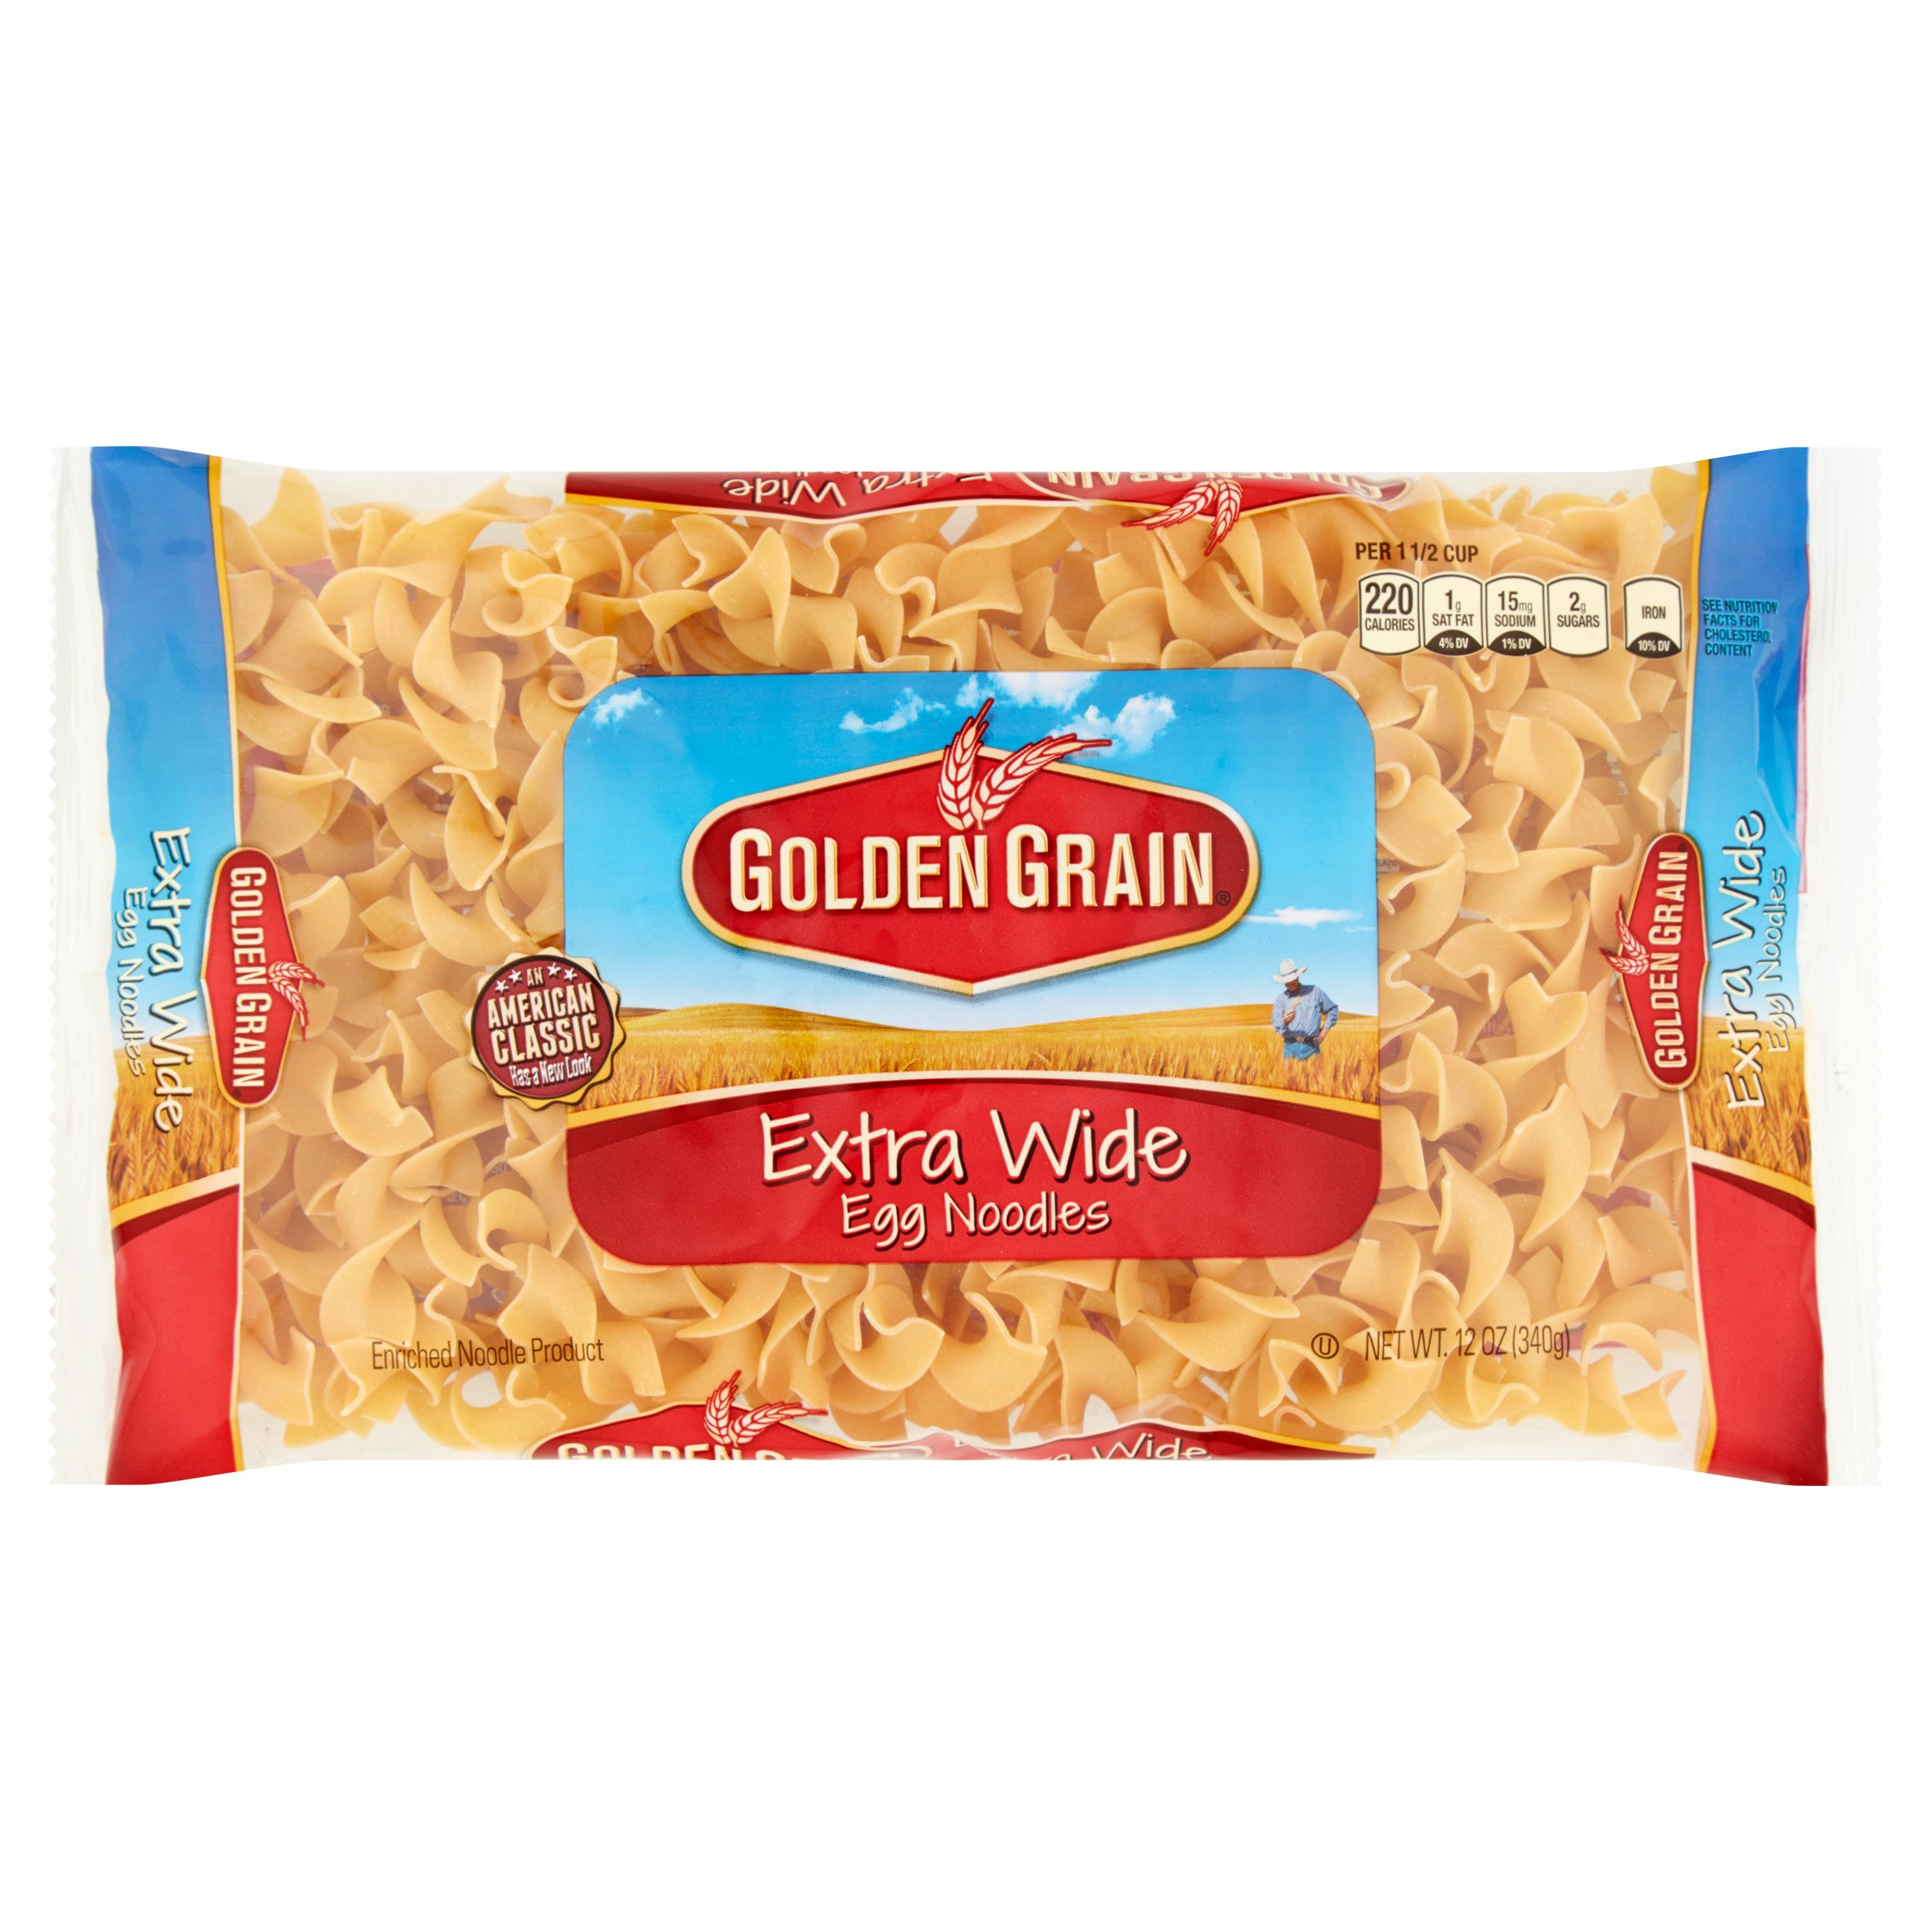 Golden Grain Extra Wide Egg Noodles 12 oz